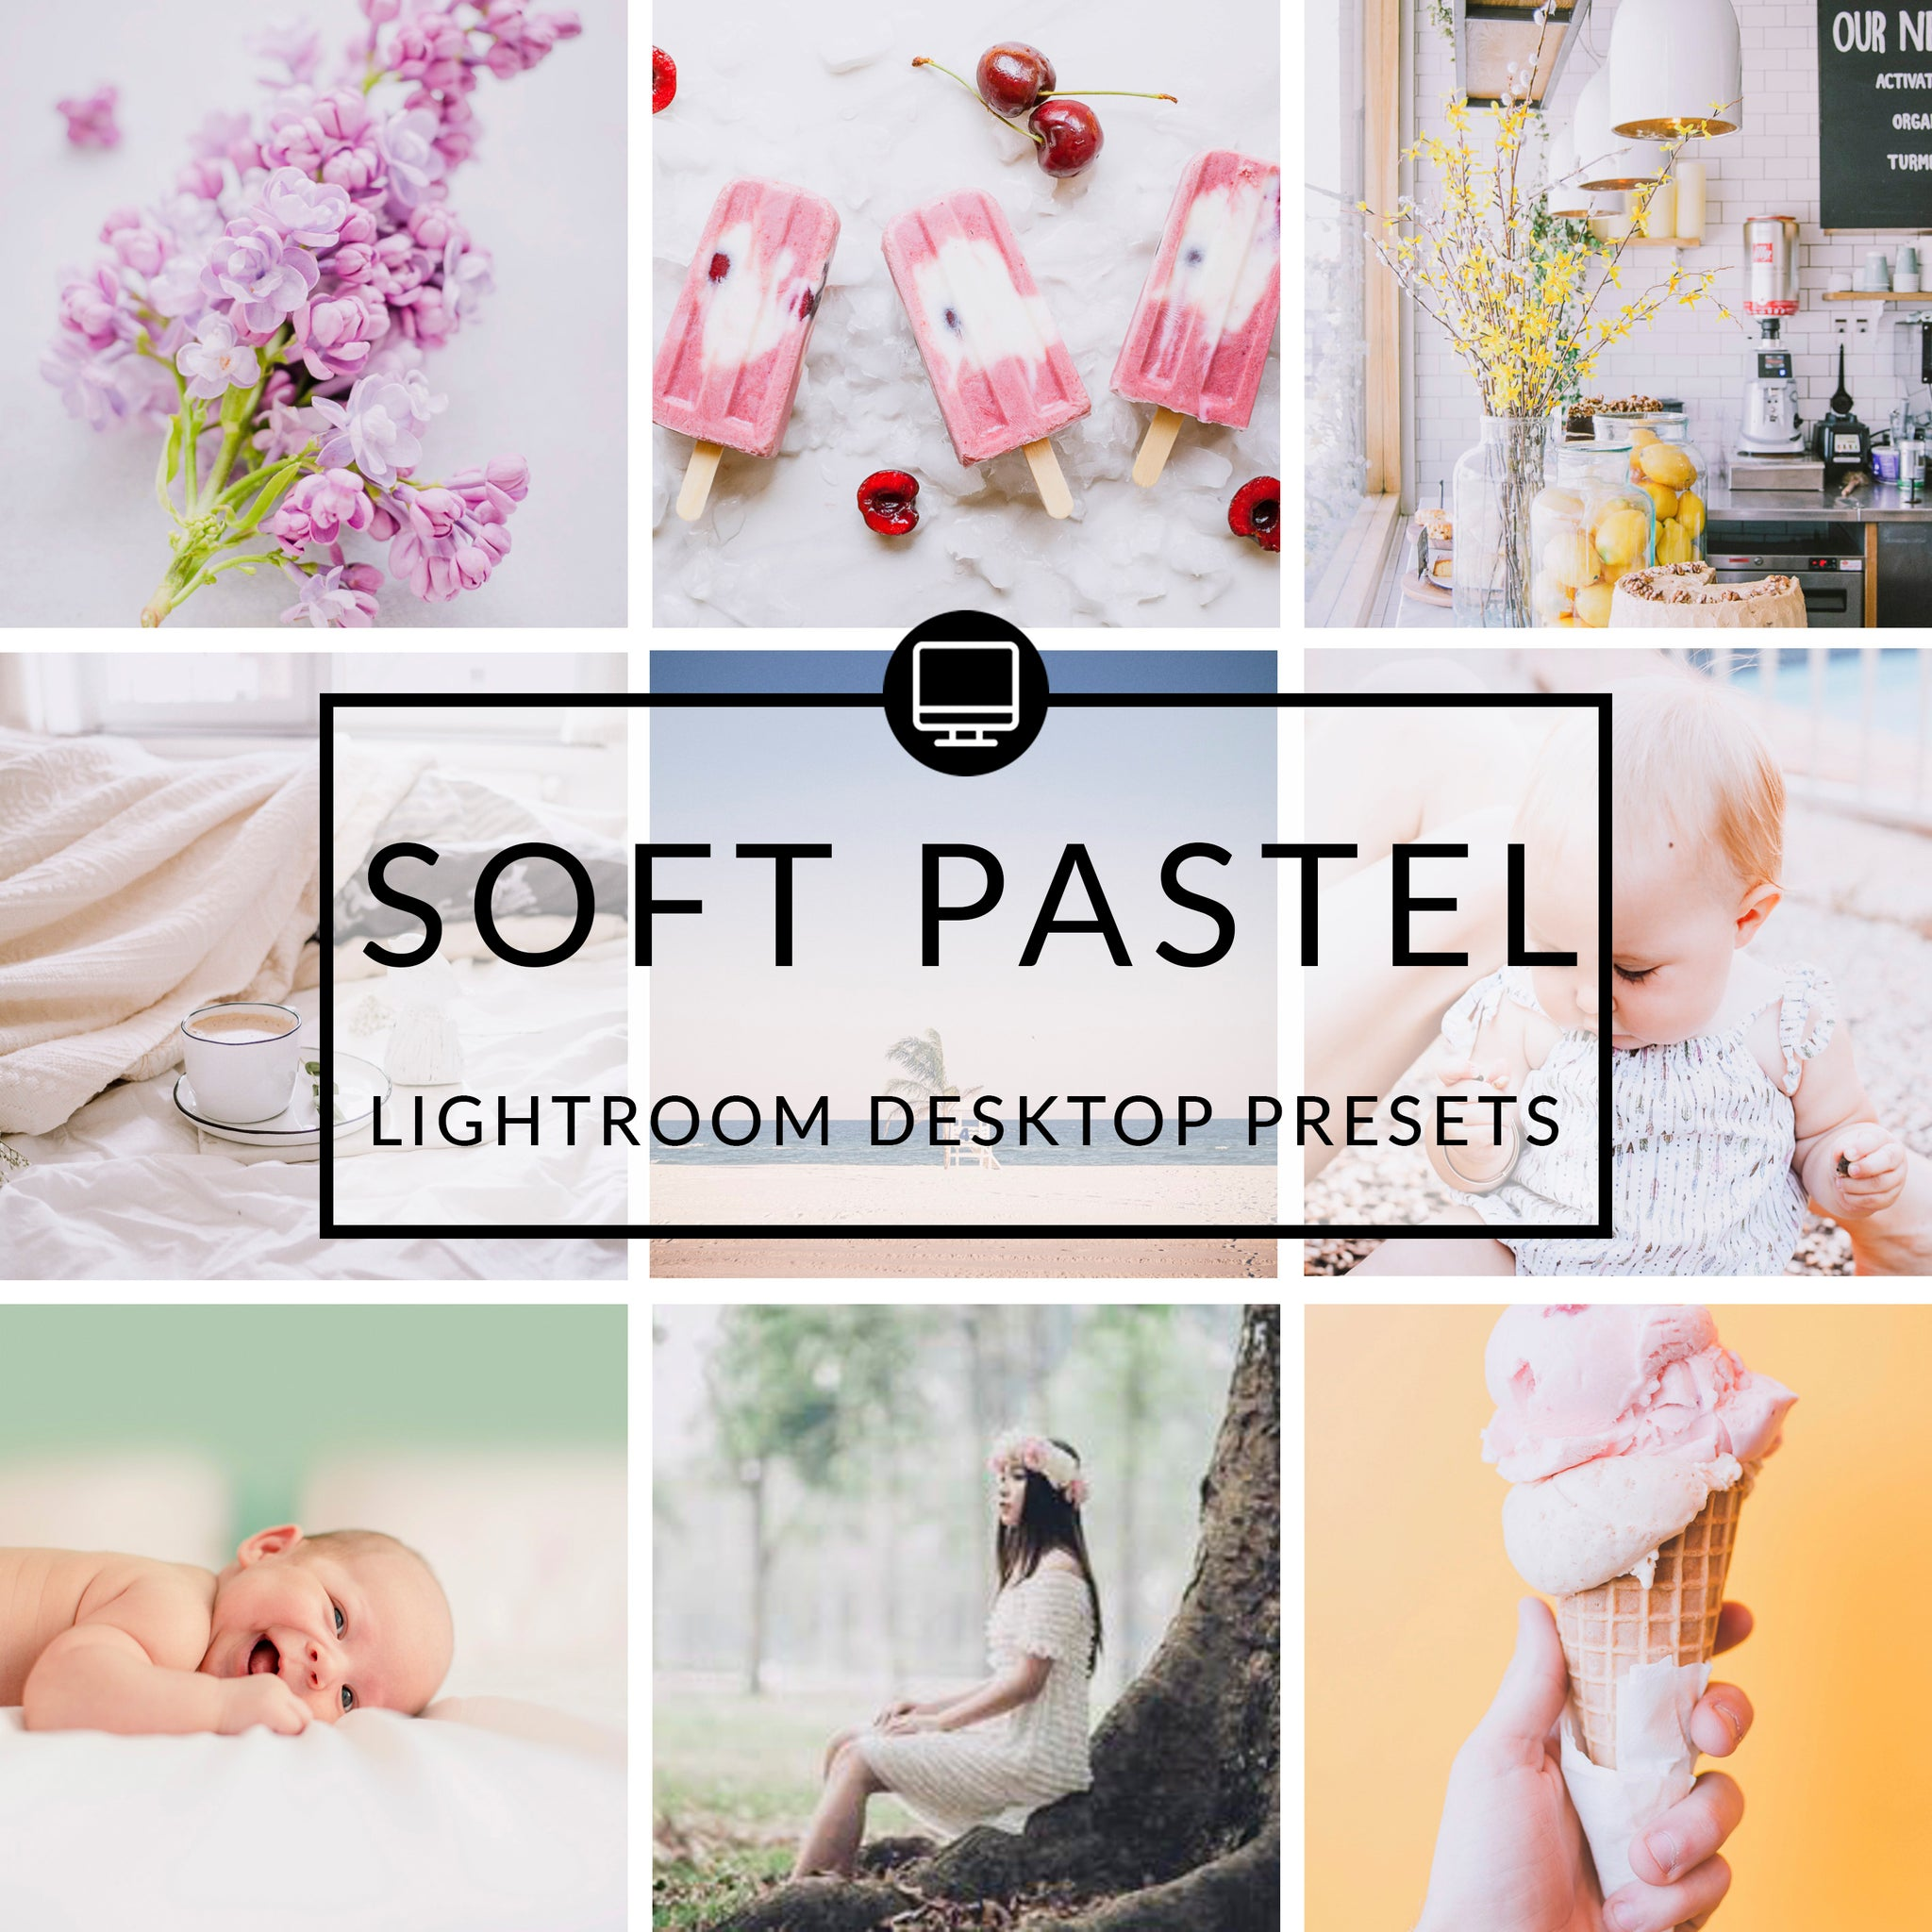 Soft Pastel Lightroom Desktop Presets